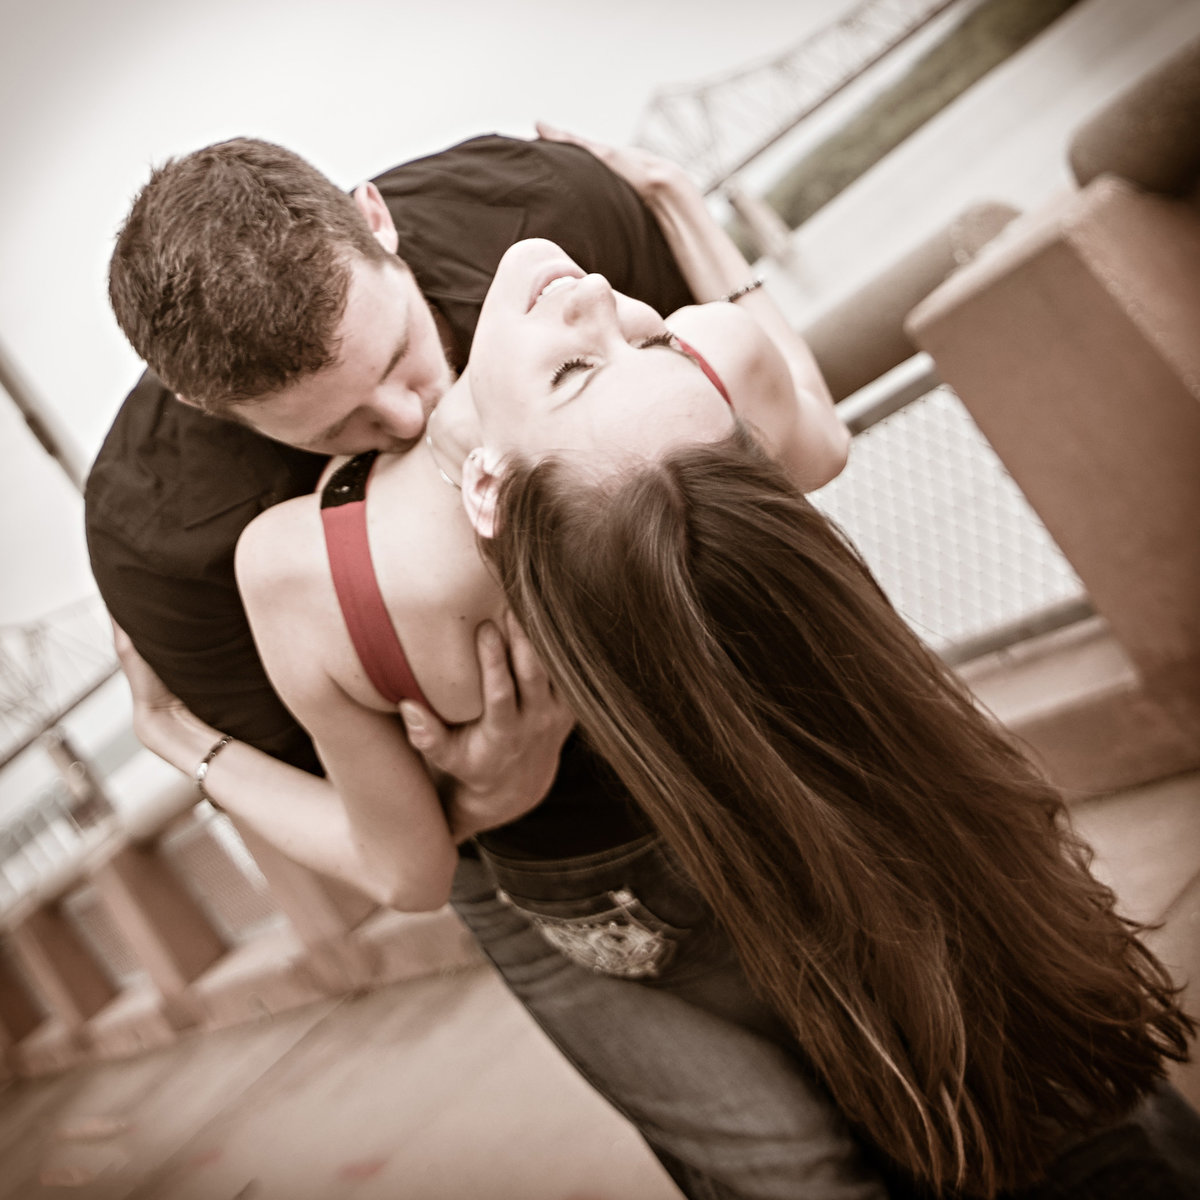 Sexy kiss for the Peoria, Illinois couple at the Peoria river front